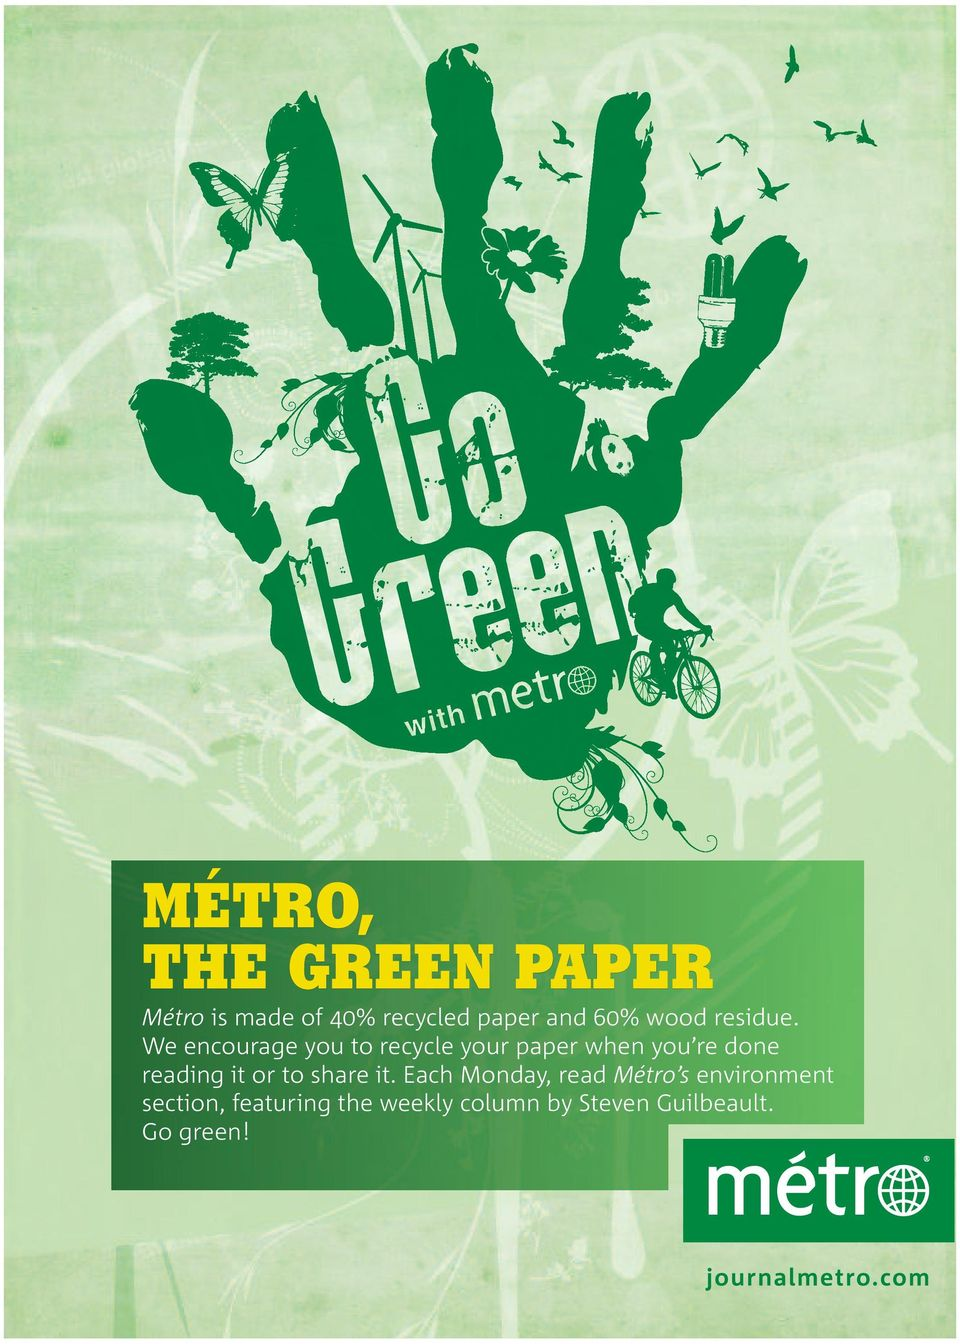 We encourage you to recycle your paper when you re done reading it